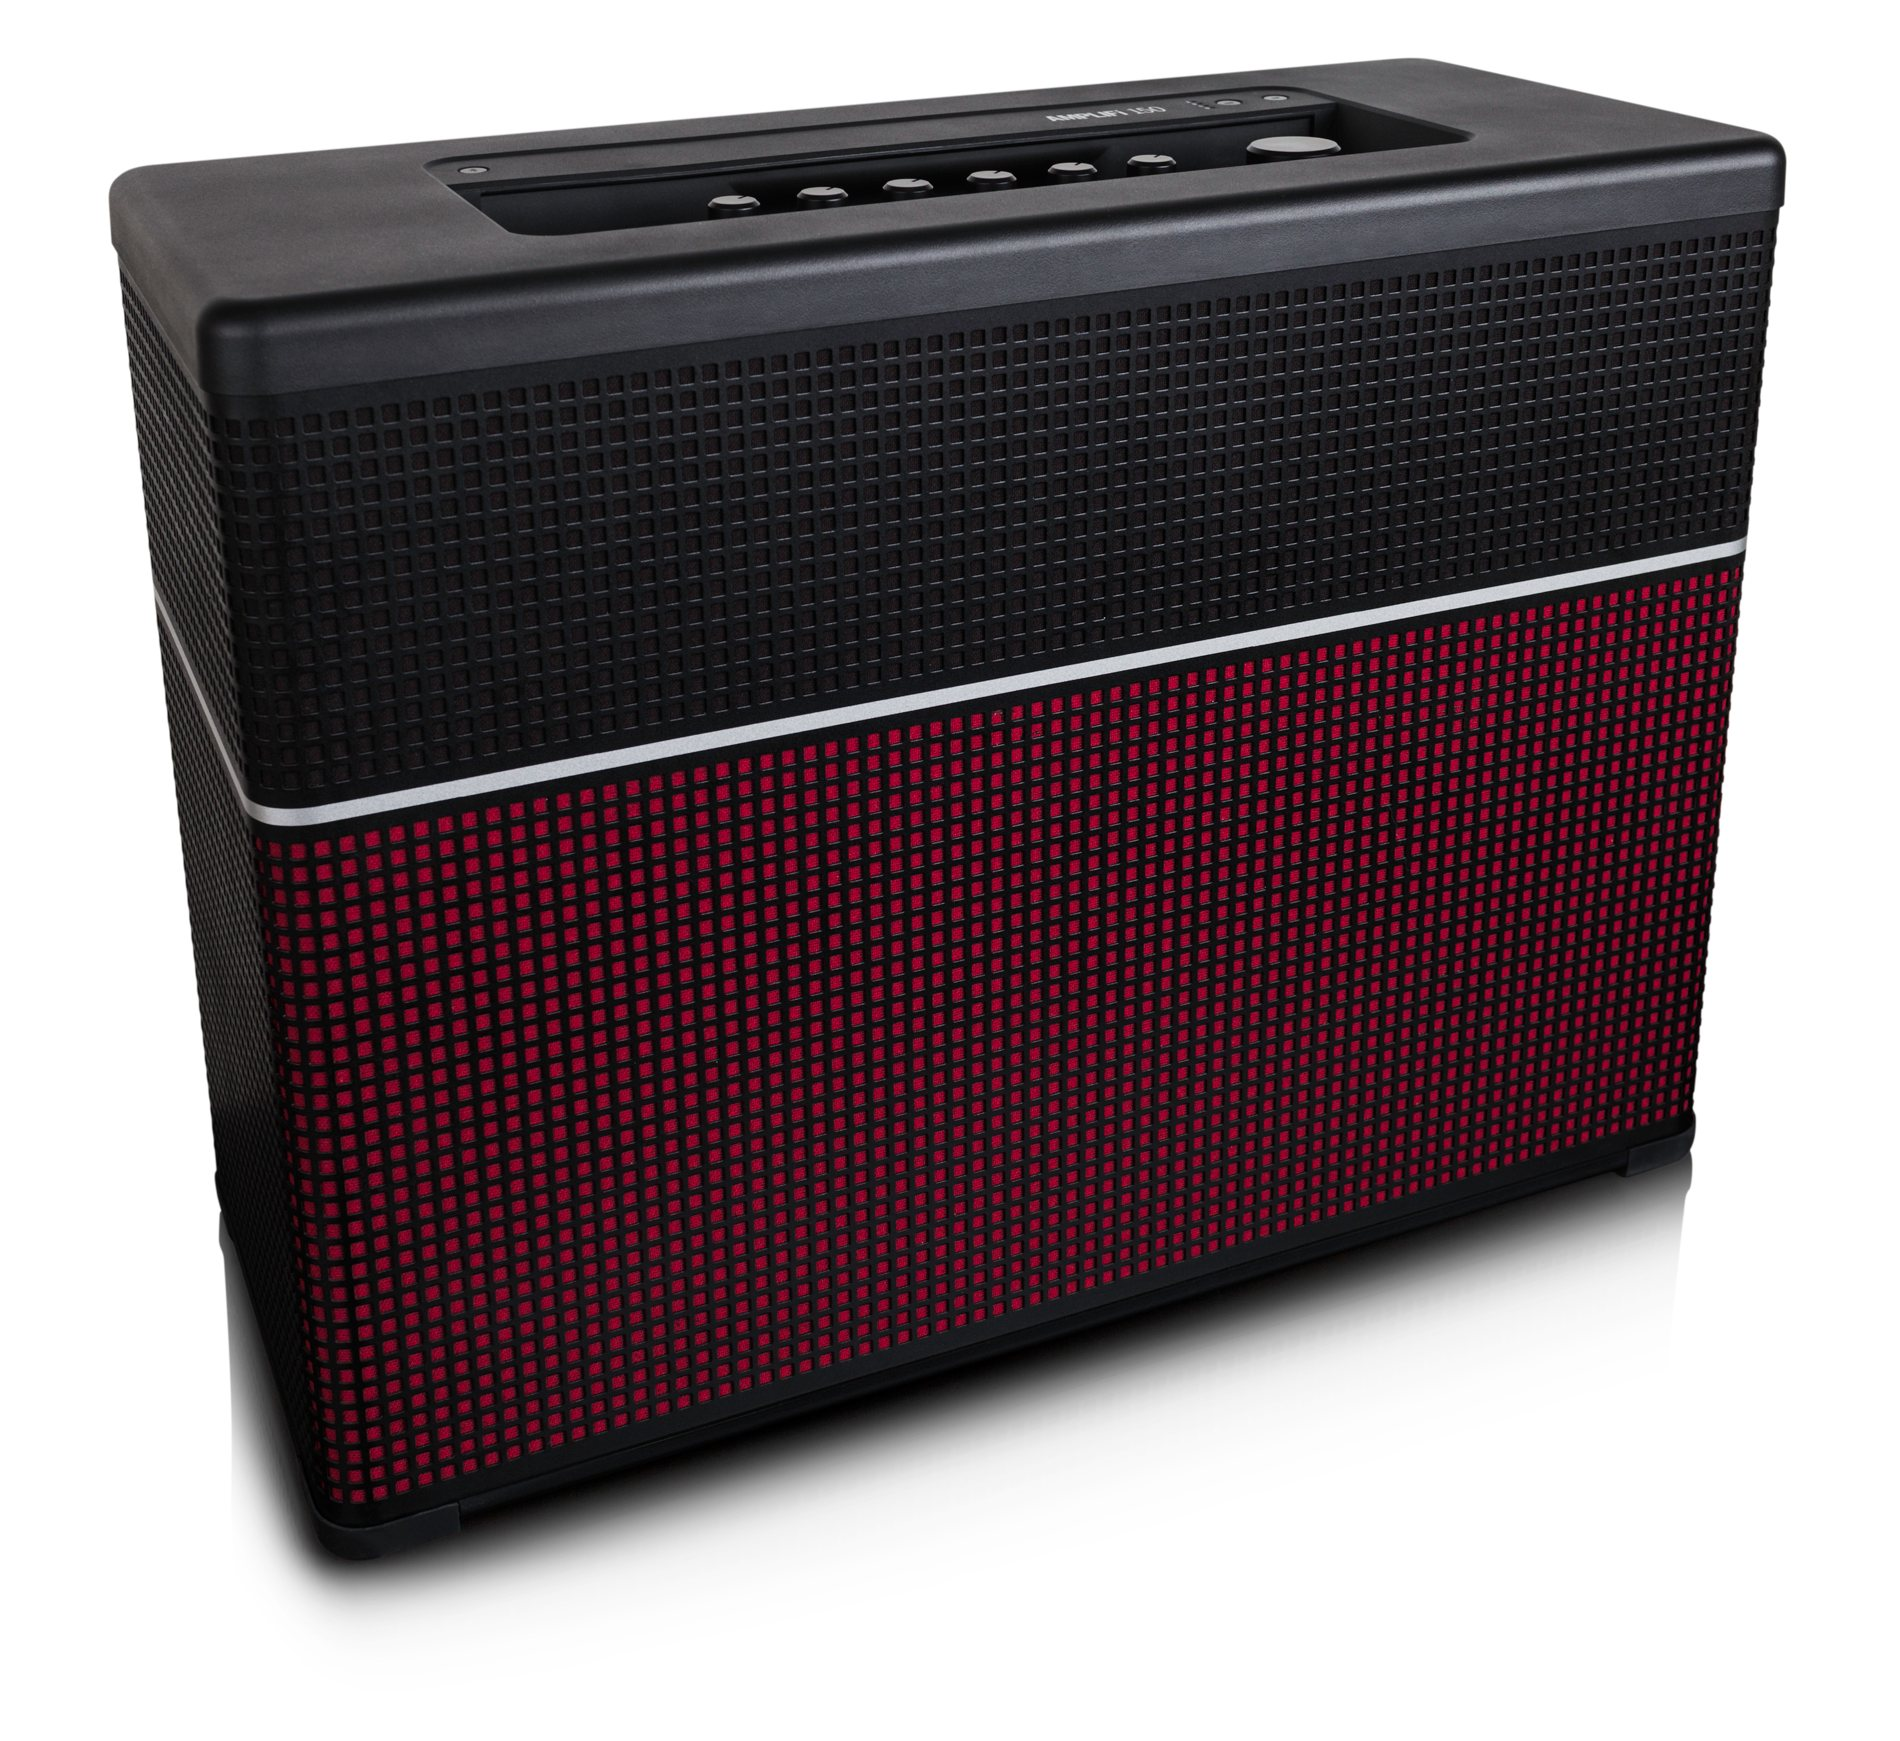 A Guitar Amp That Doubles as Home Speaker System: AMPLIFi, with